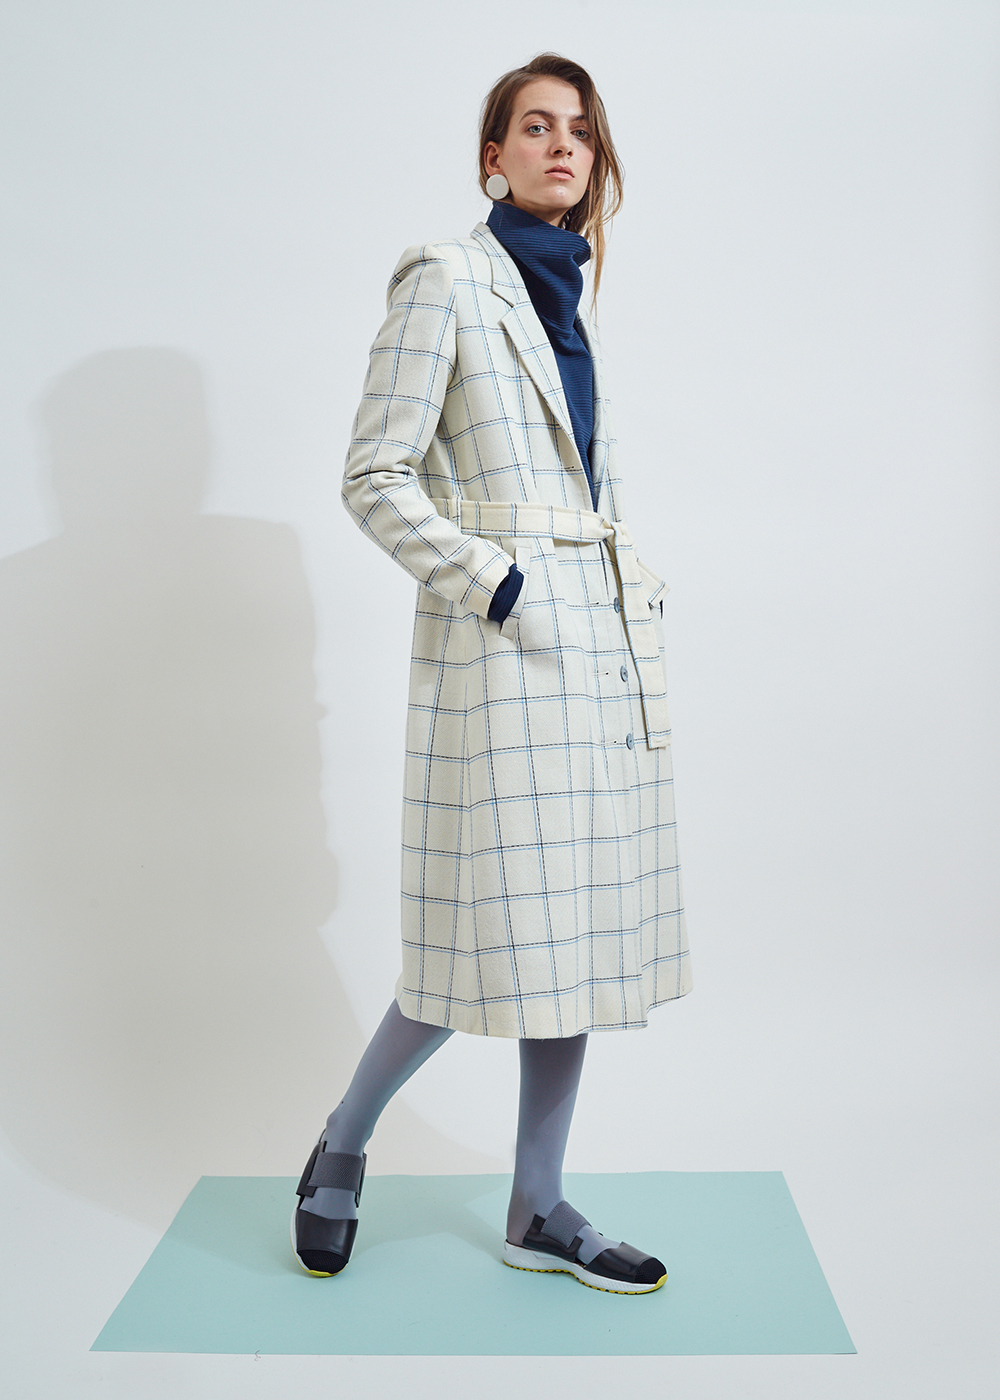 Marie Coat from Maqu